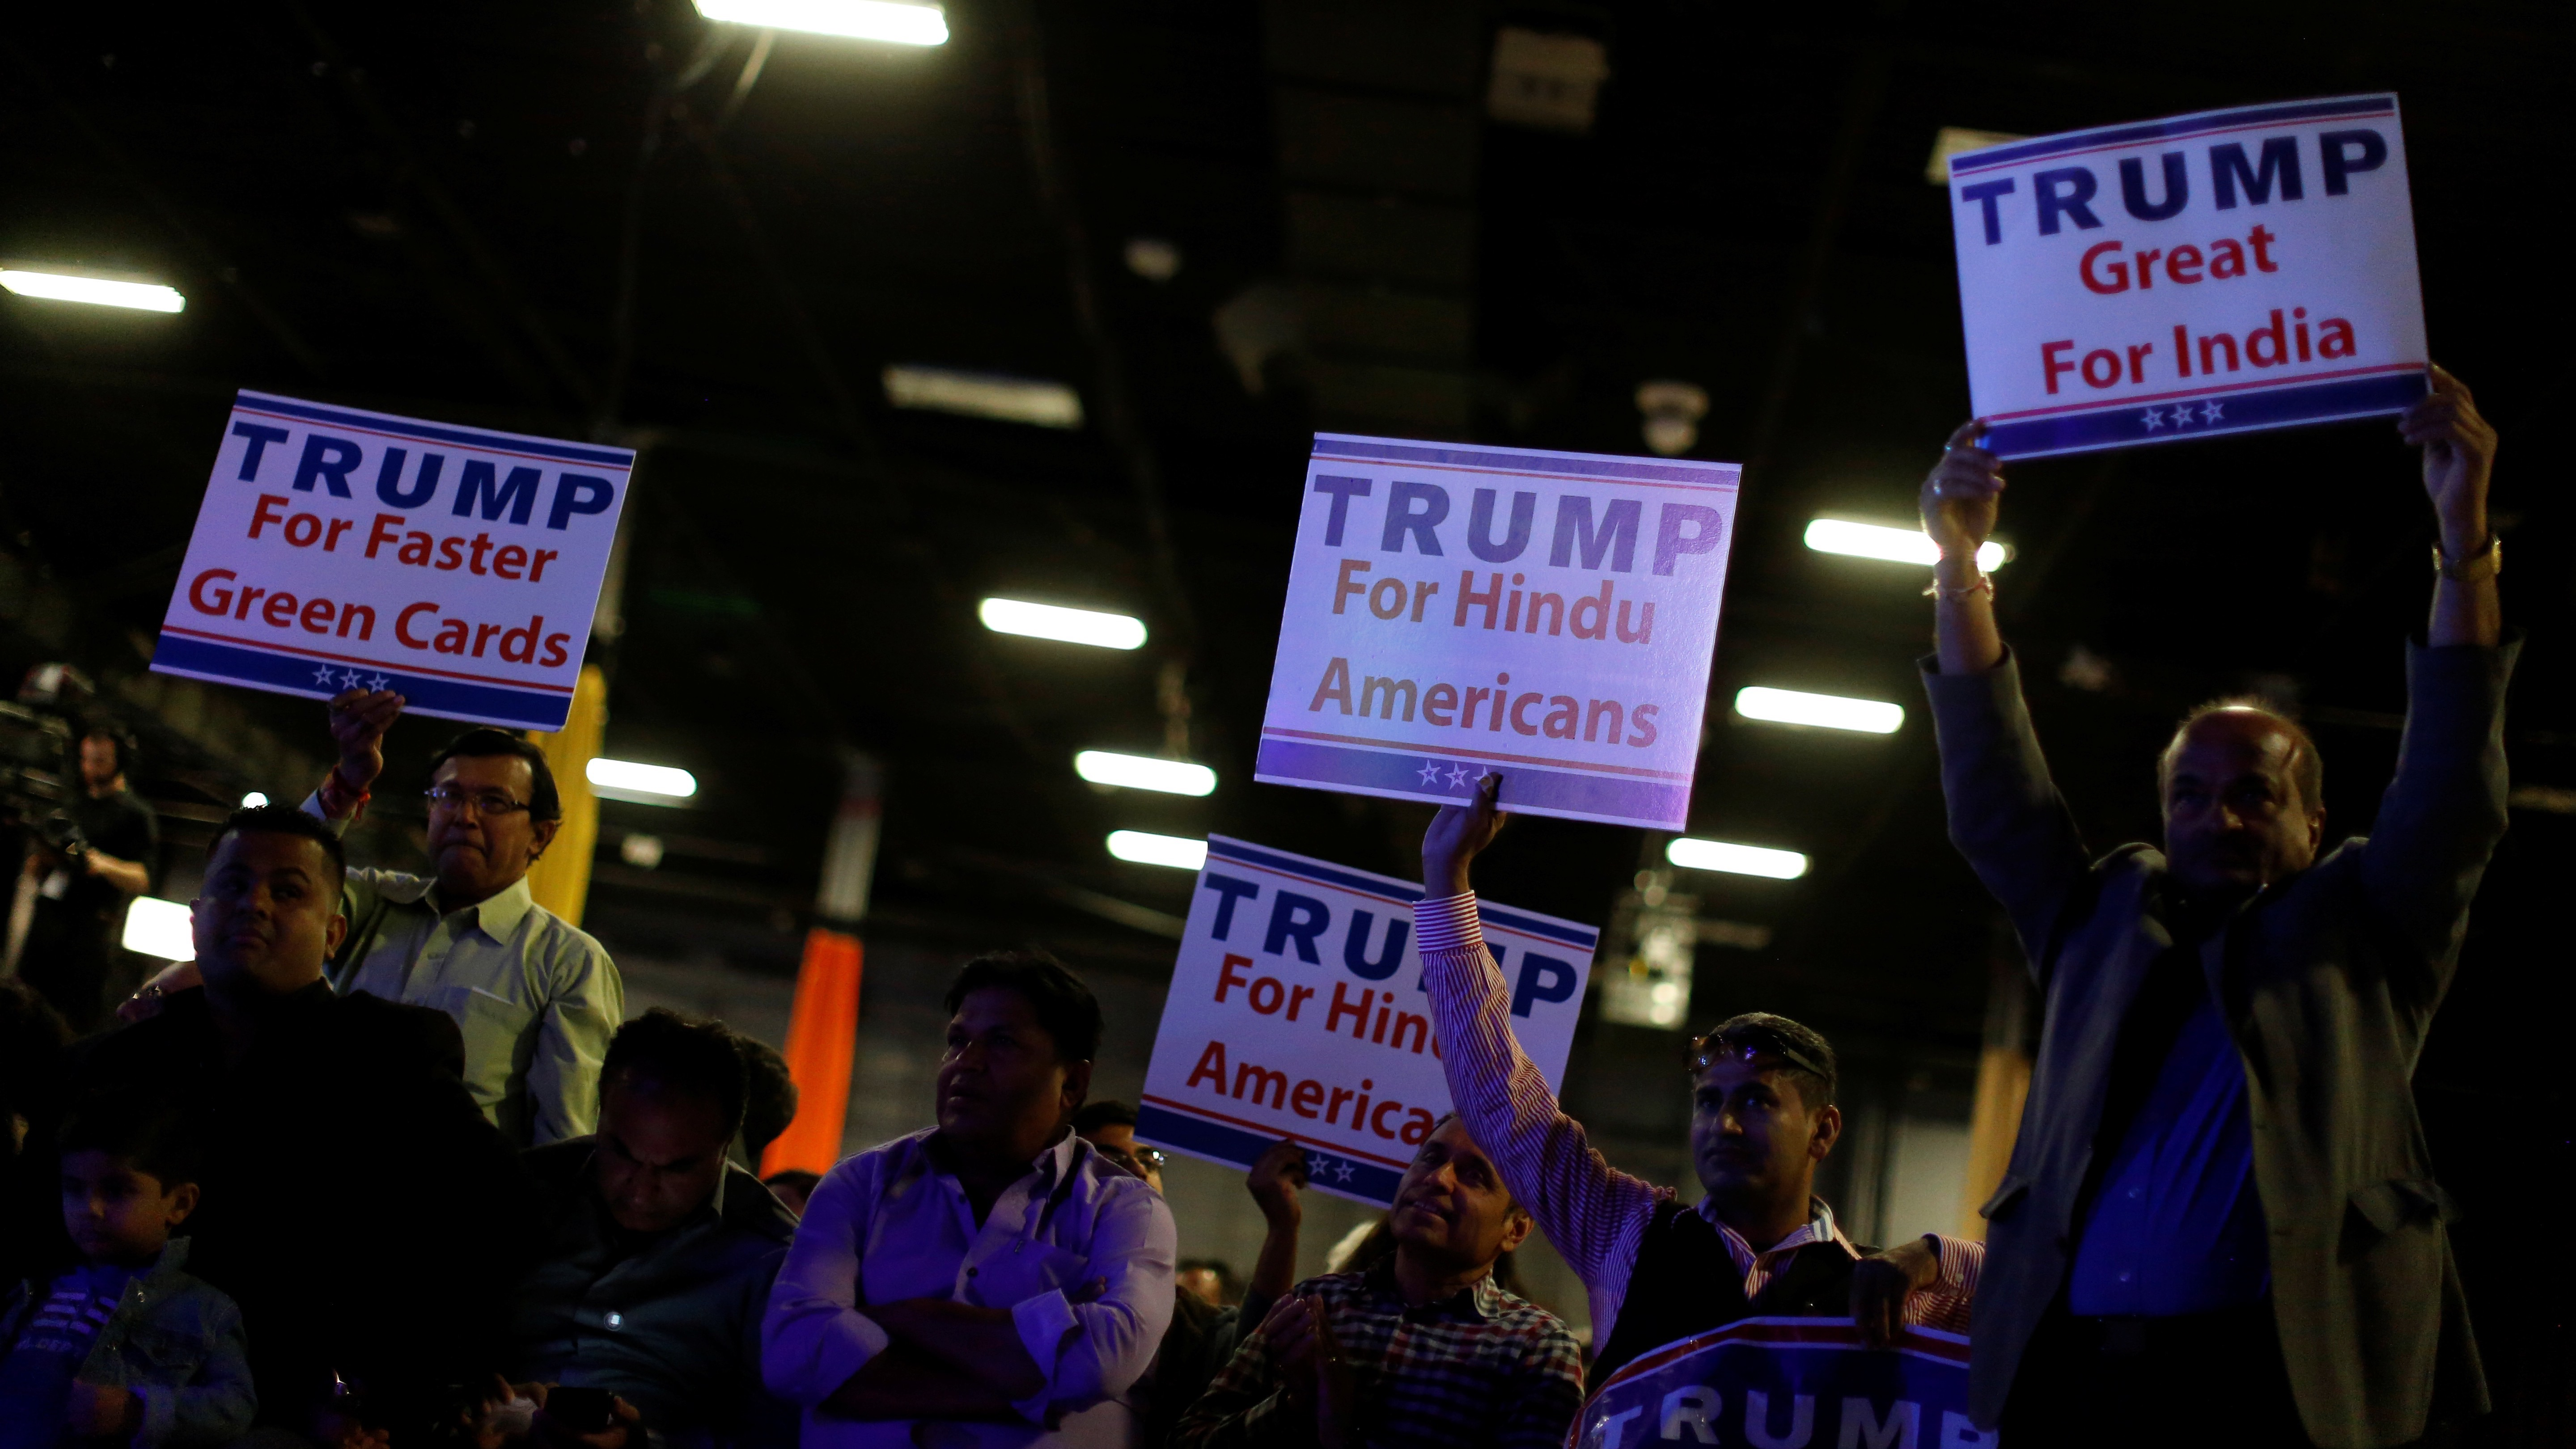 Trump for Hindu Americans, Indians